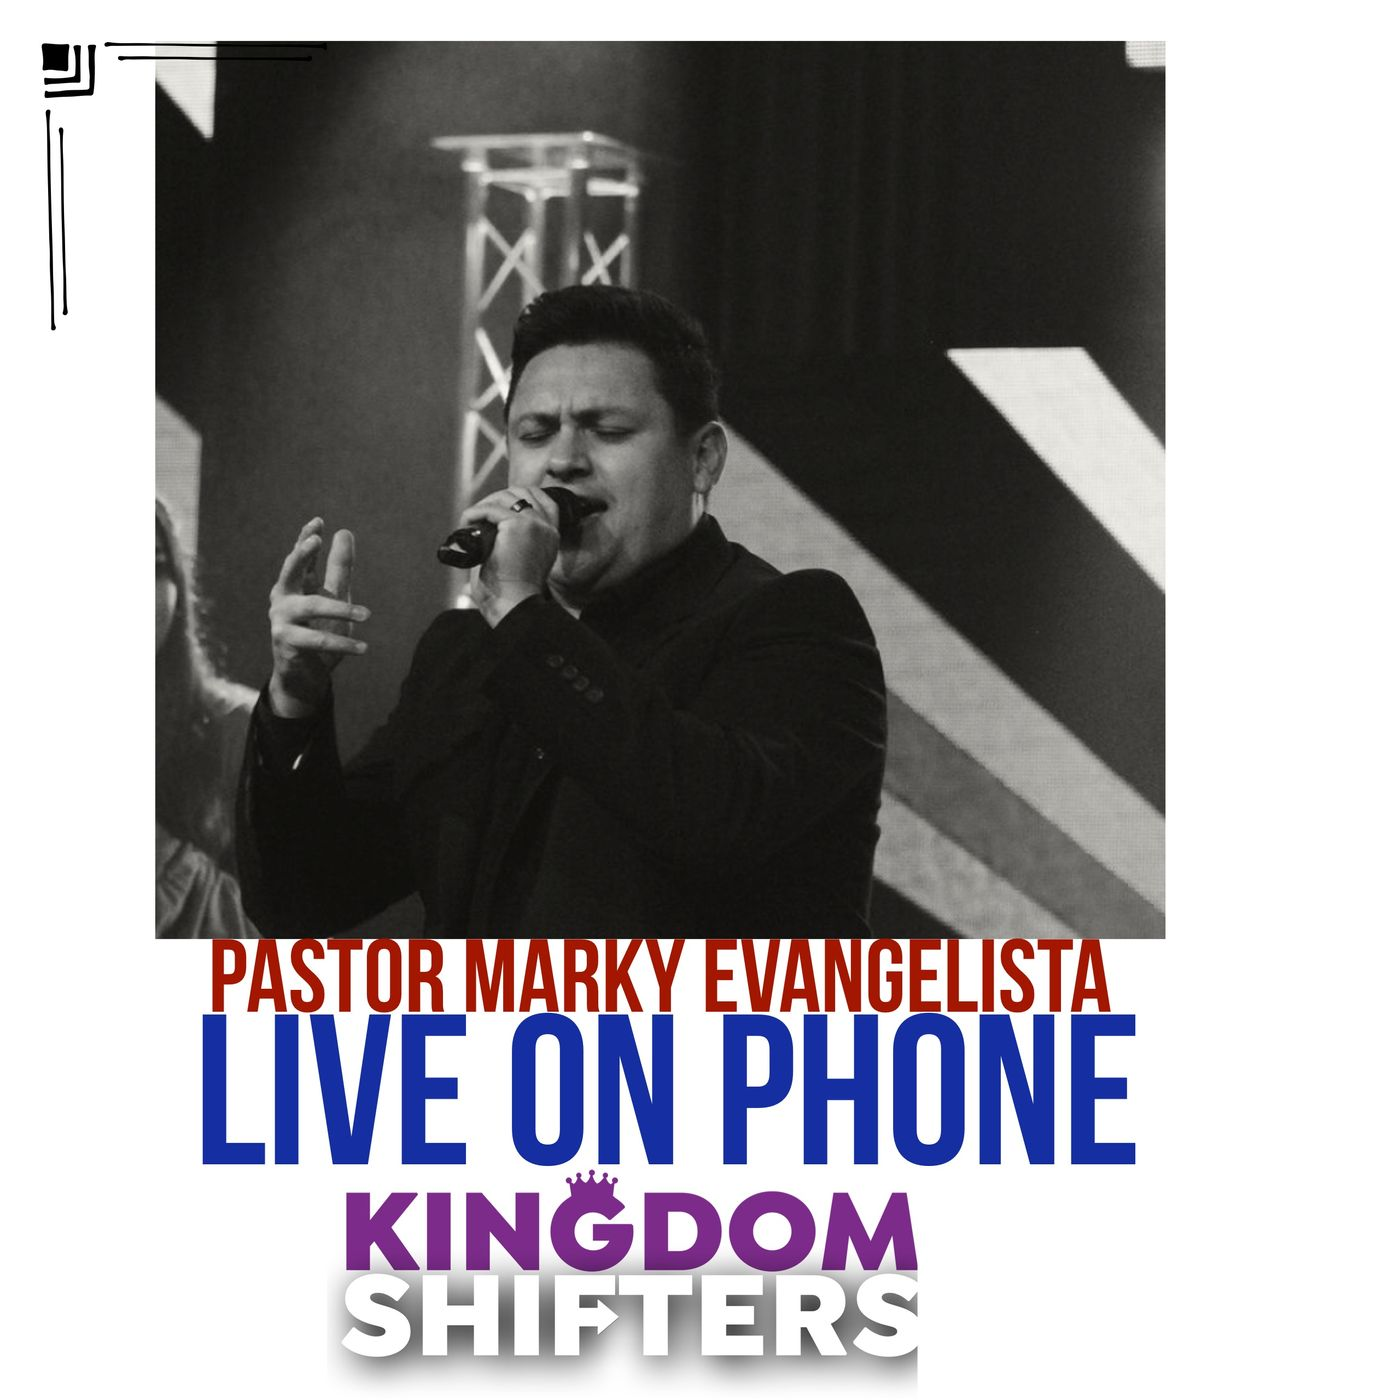 Kingdom Shifters The Podcast : Flow with the Holy Spirit with guest Pastor Marky Evangelista